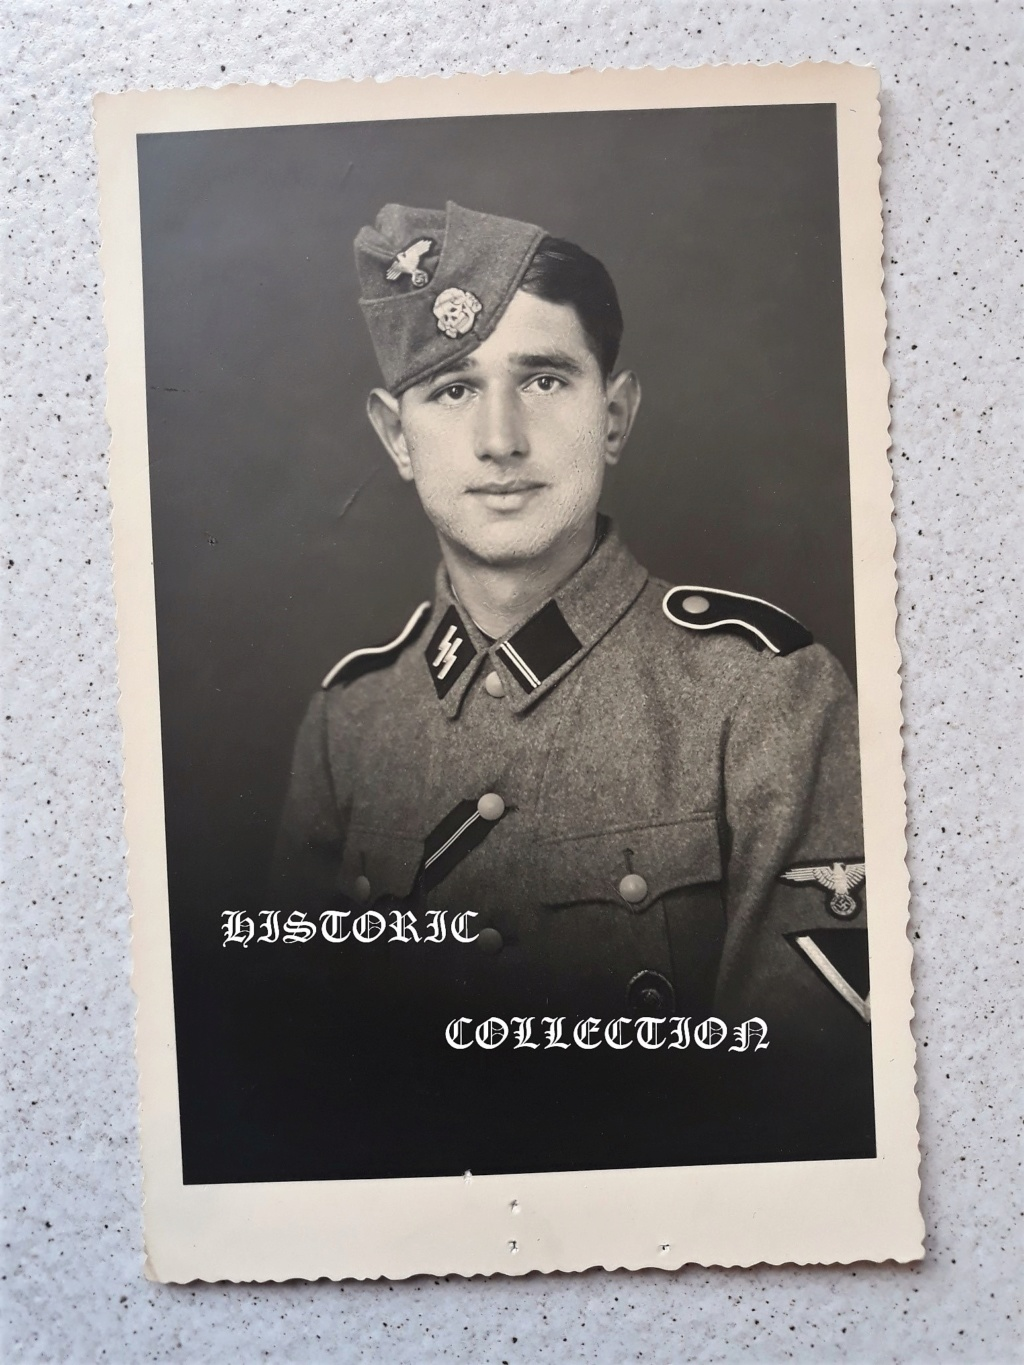 postez vos articles Waffen-SS - Page 5 20191118